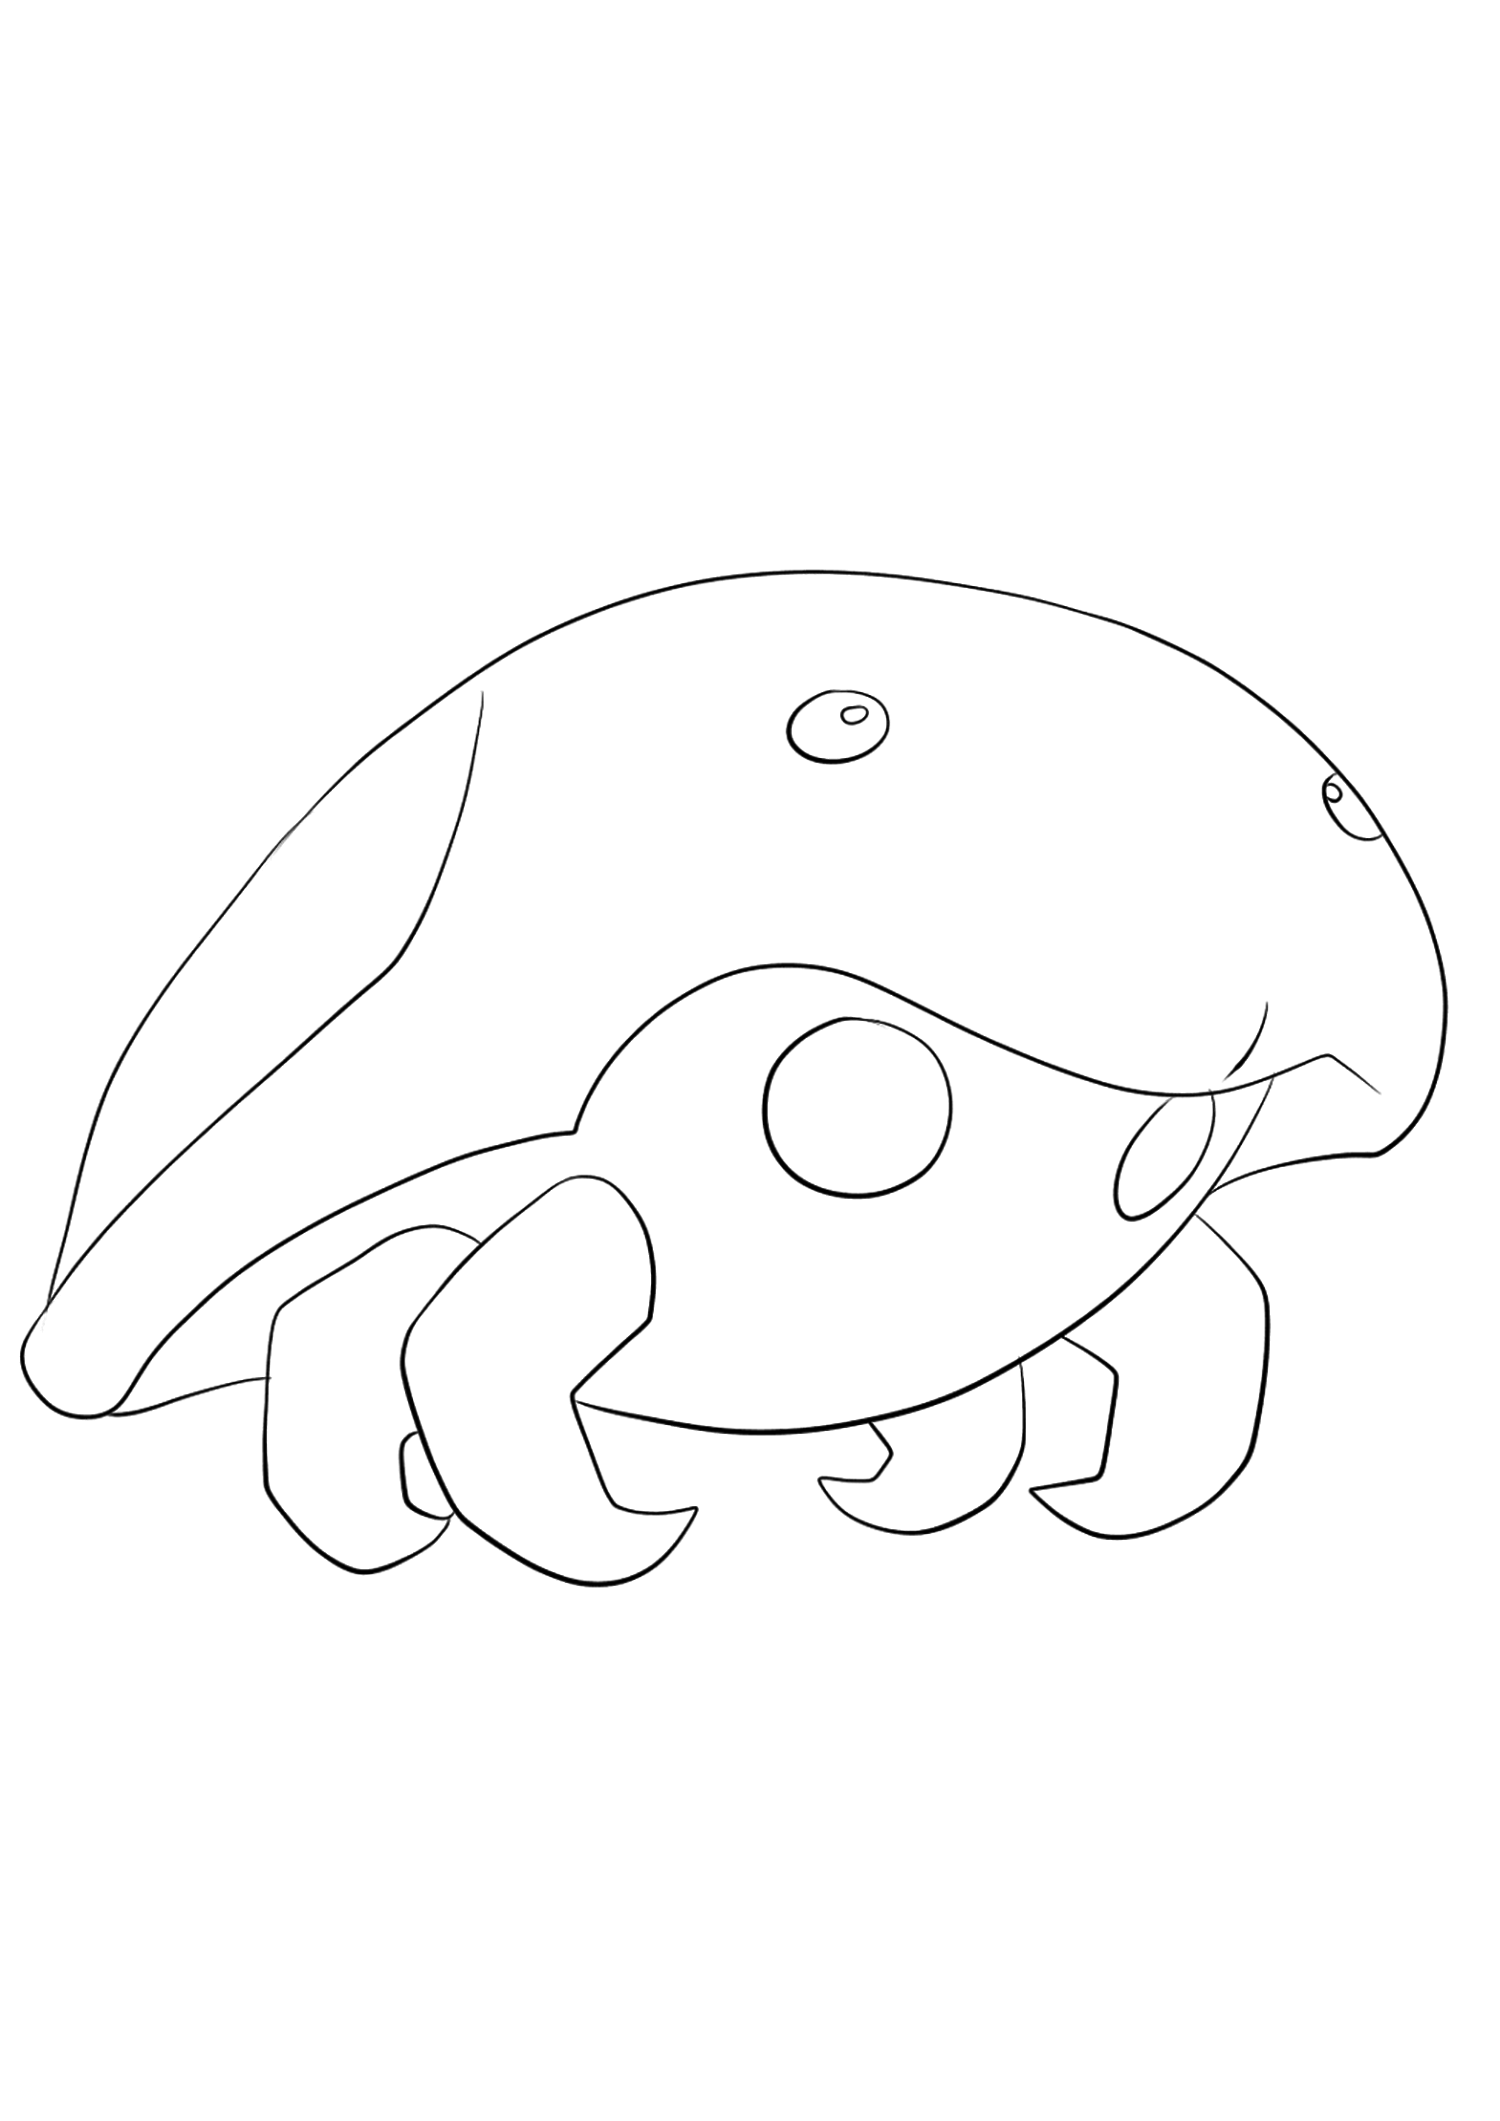 Kabuto (No.140)Coloriage de Kabuto (Kabuto), Pokémon de Génération I, de type : Roche et EauOriginal image credit: Pokemon linearts by Lilly Gerbil on Deviantart.Permission:  All rights reserved © Pokemon company and Ken Sugimori.